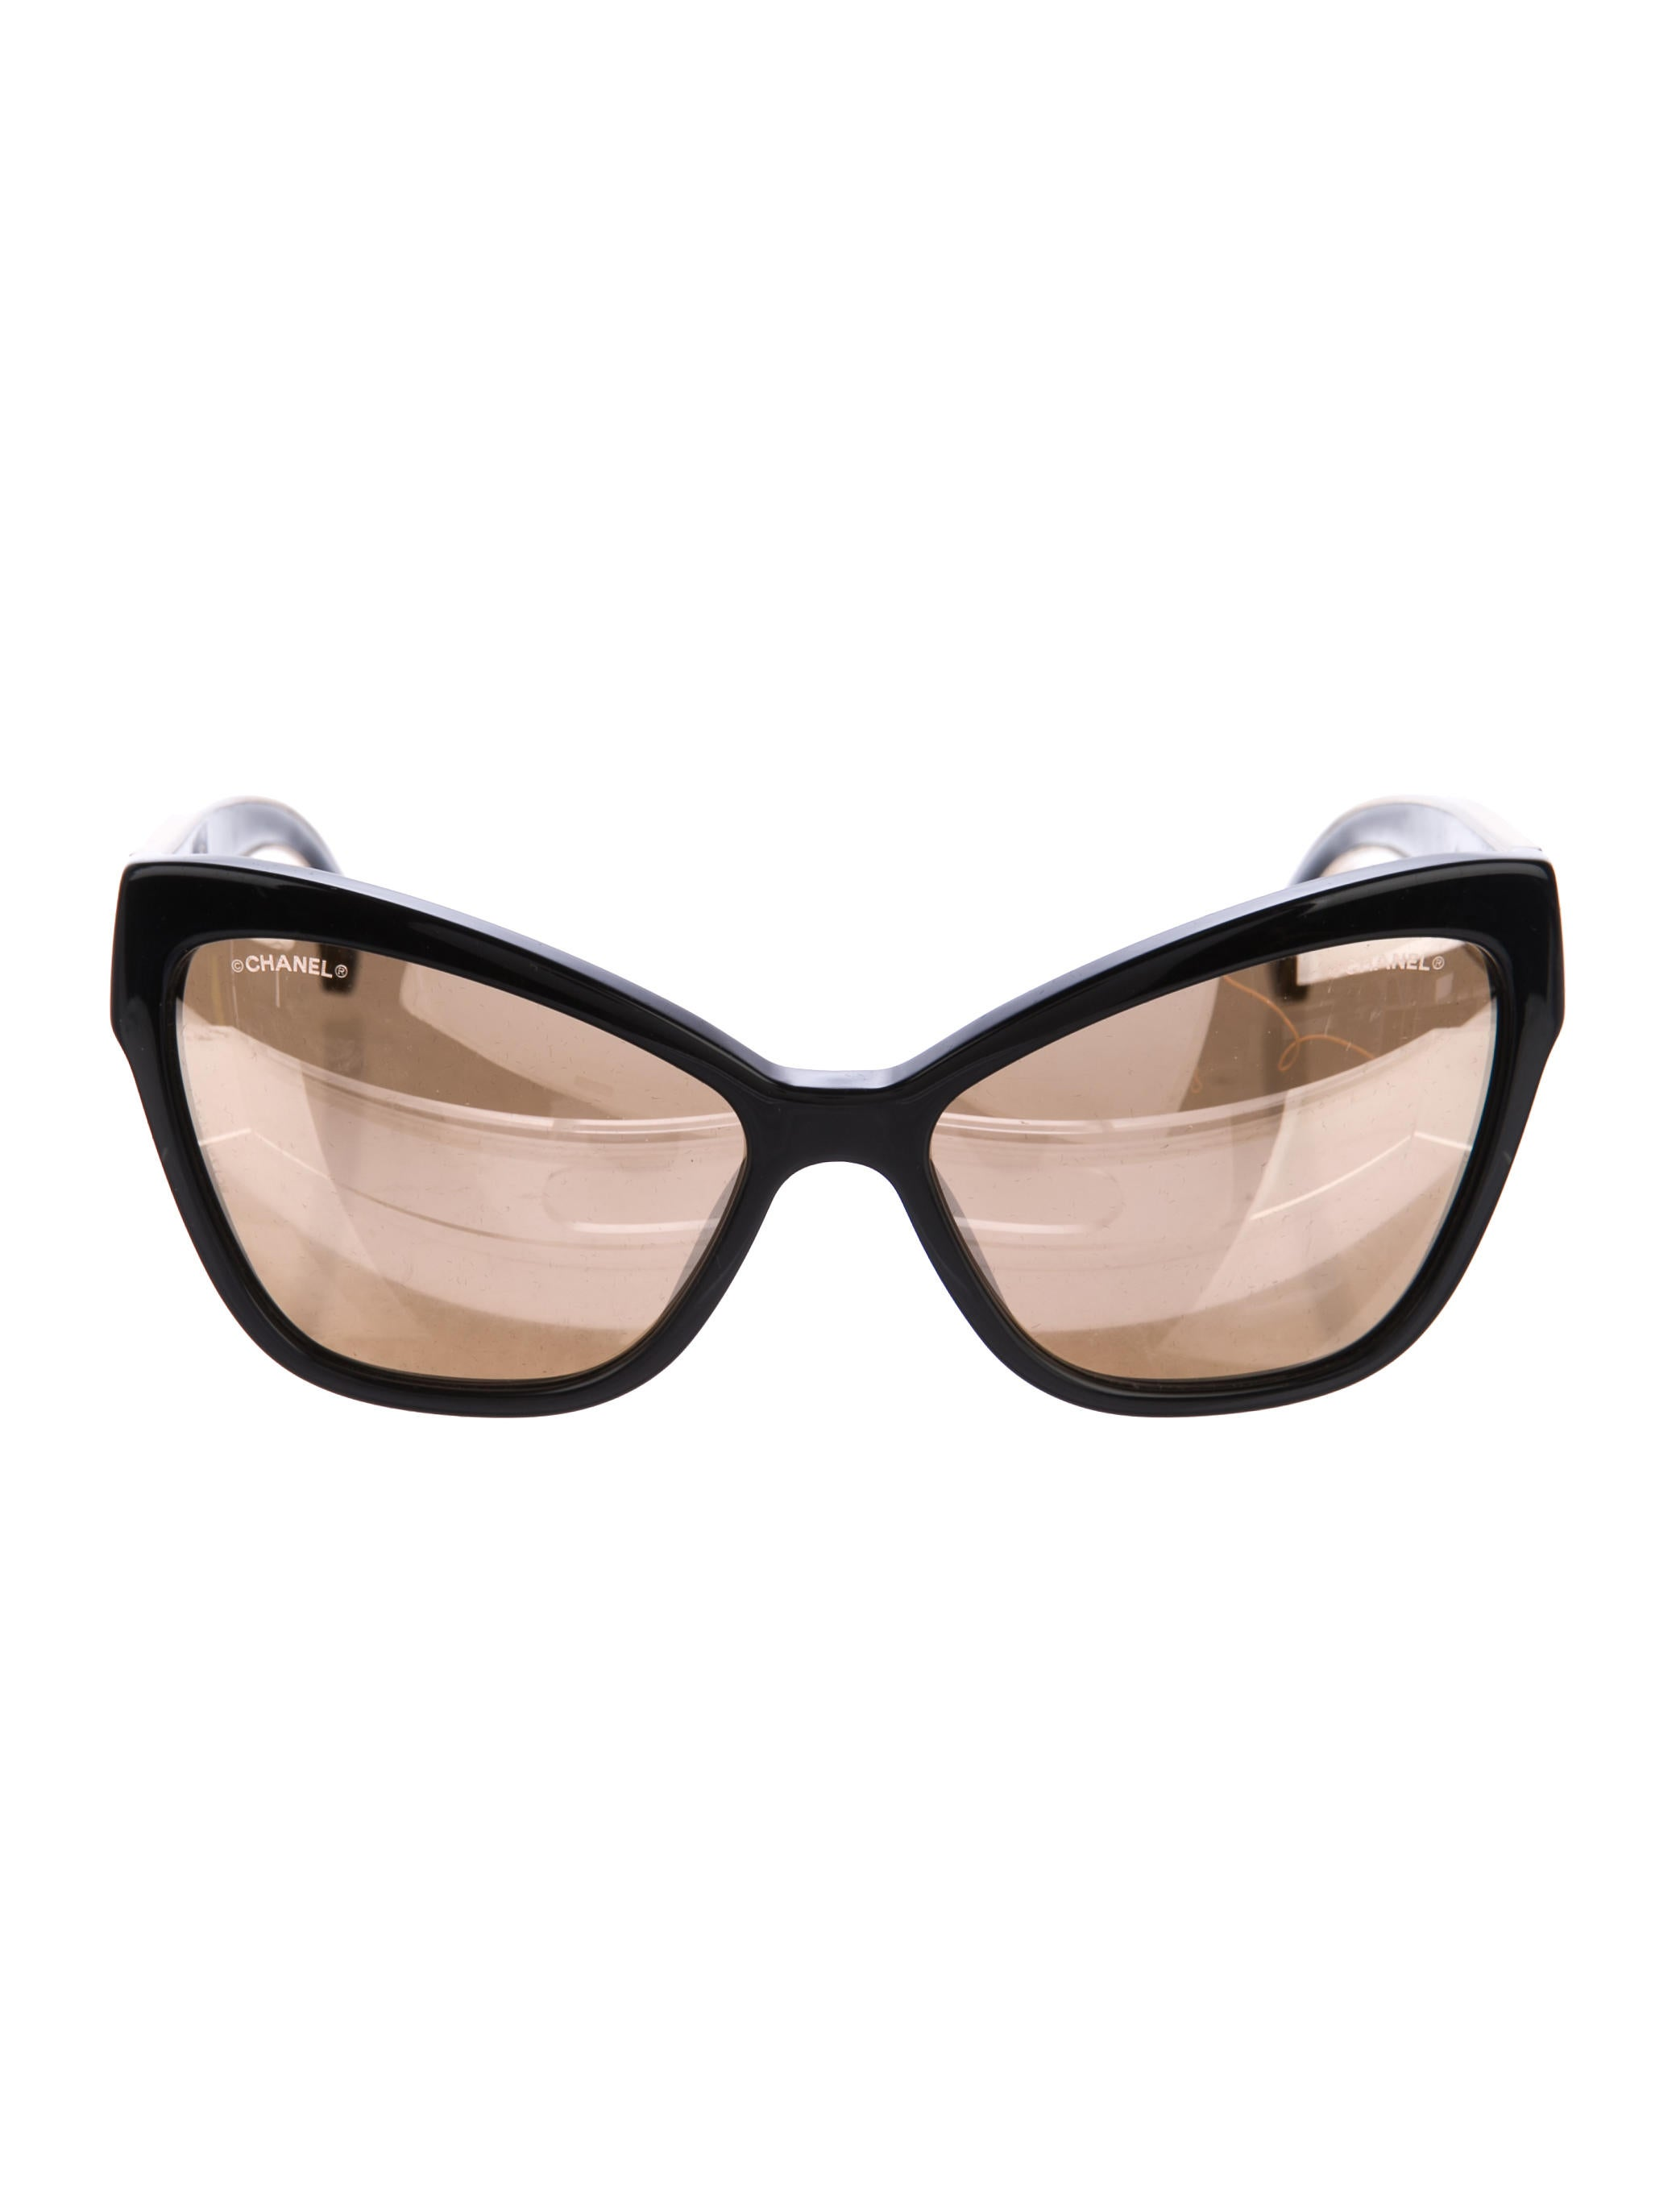 9d599c969 Chanel Mirrored Cat-Eye Sunglasses - Accessories - CHA215345 | The ...